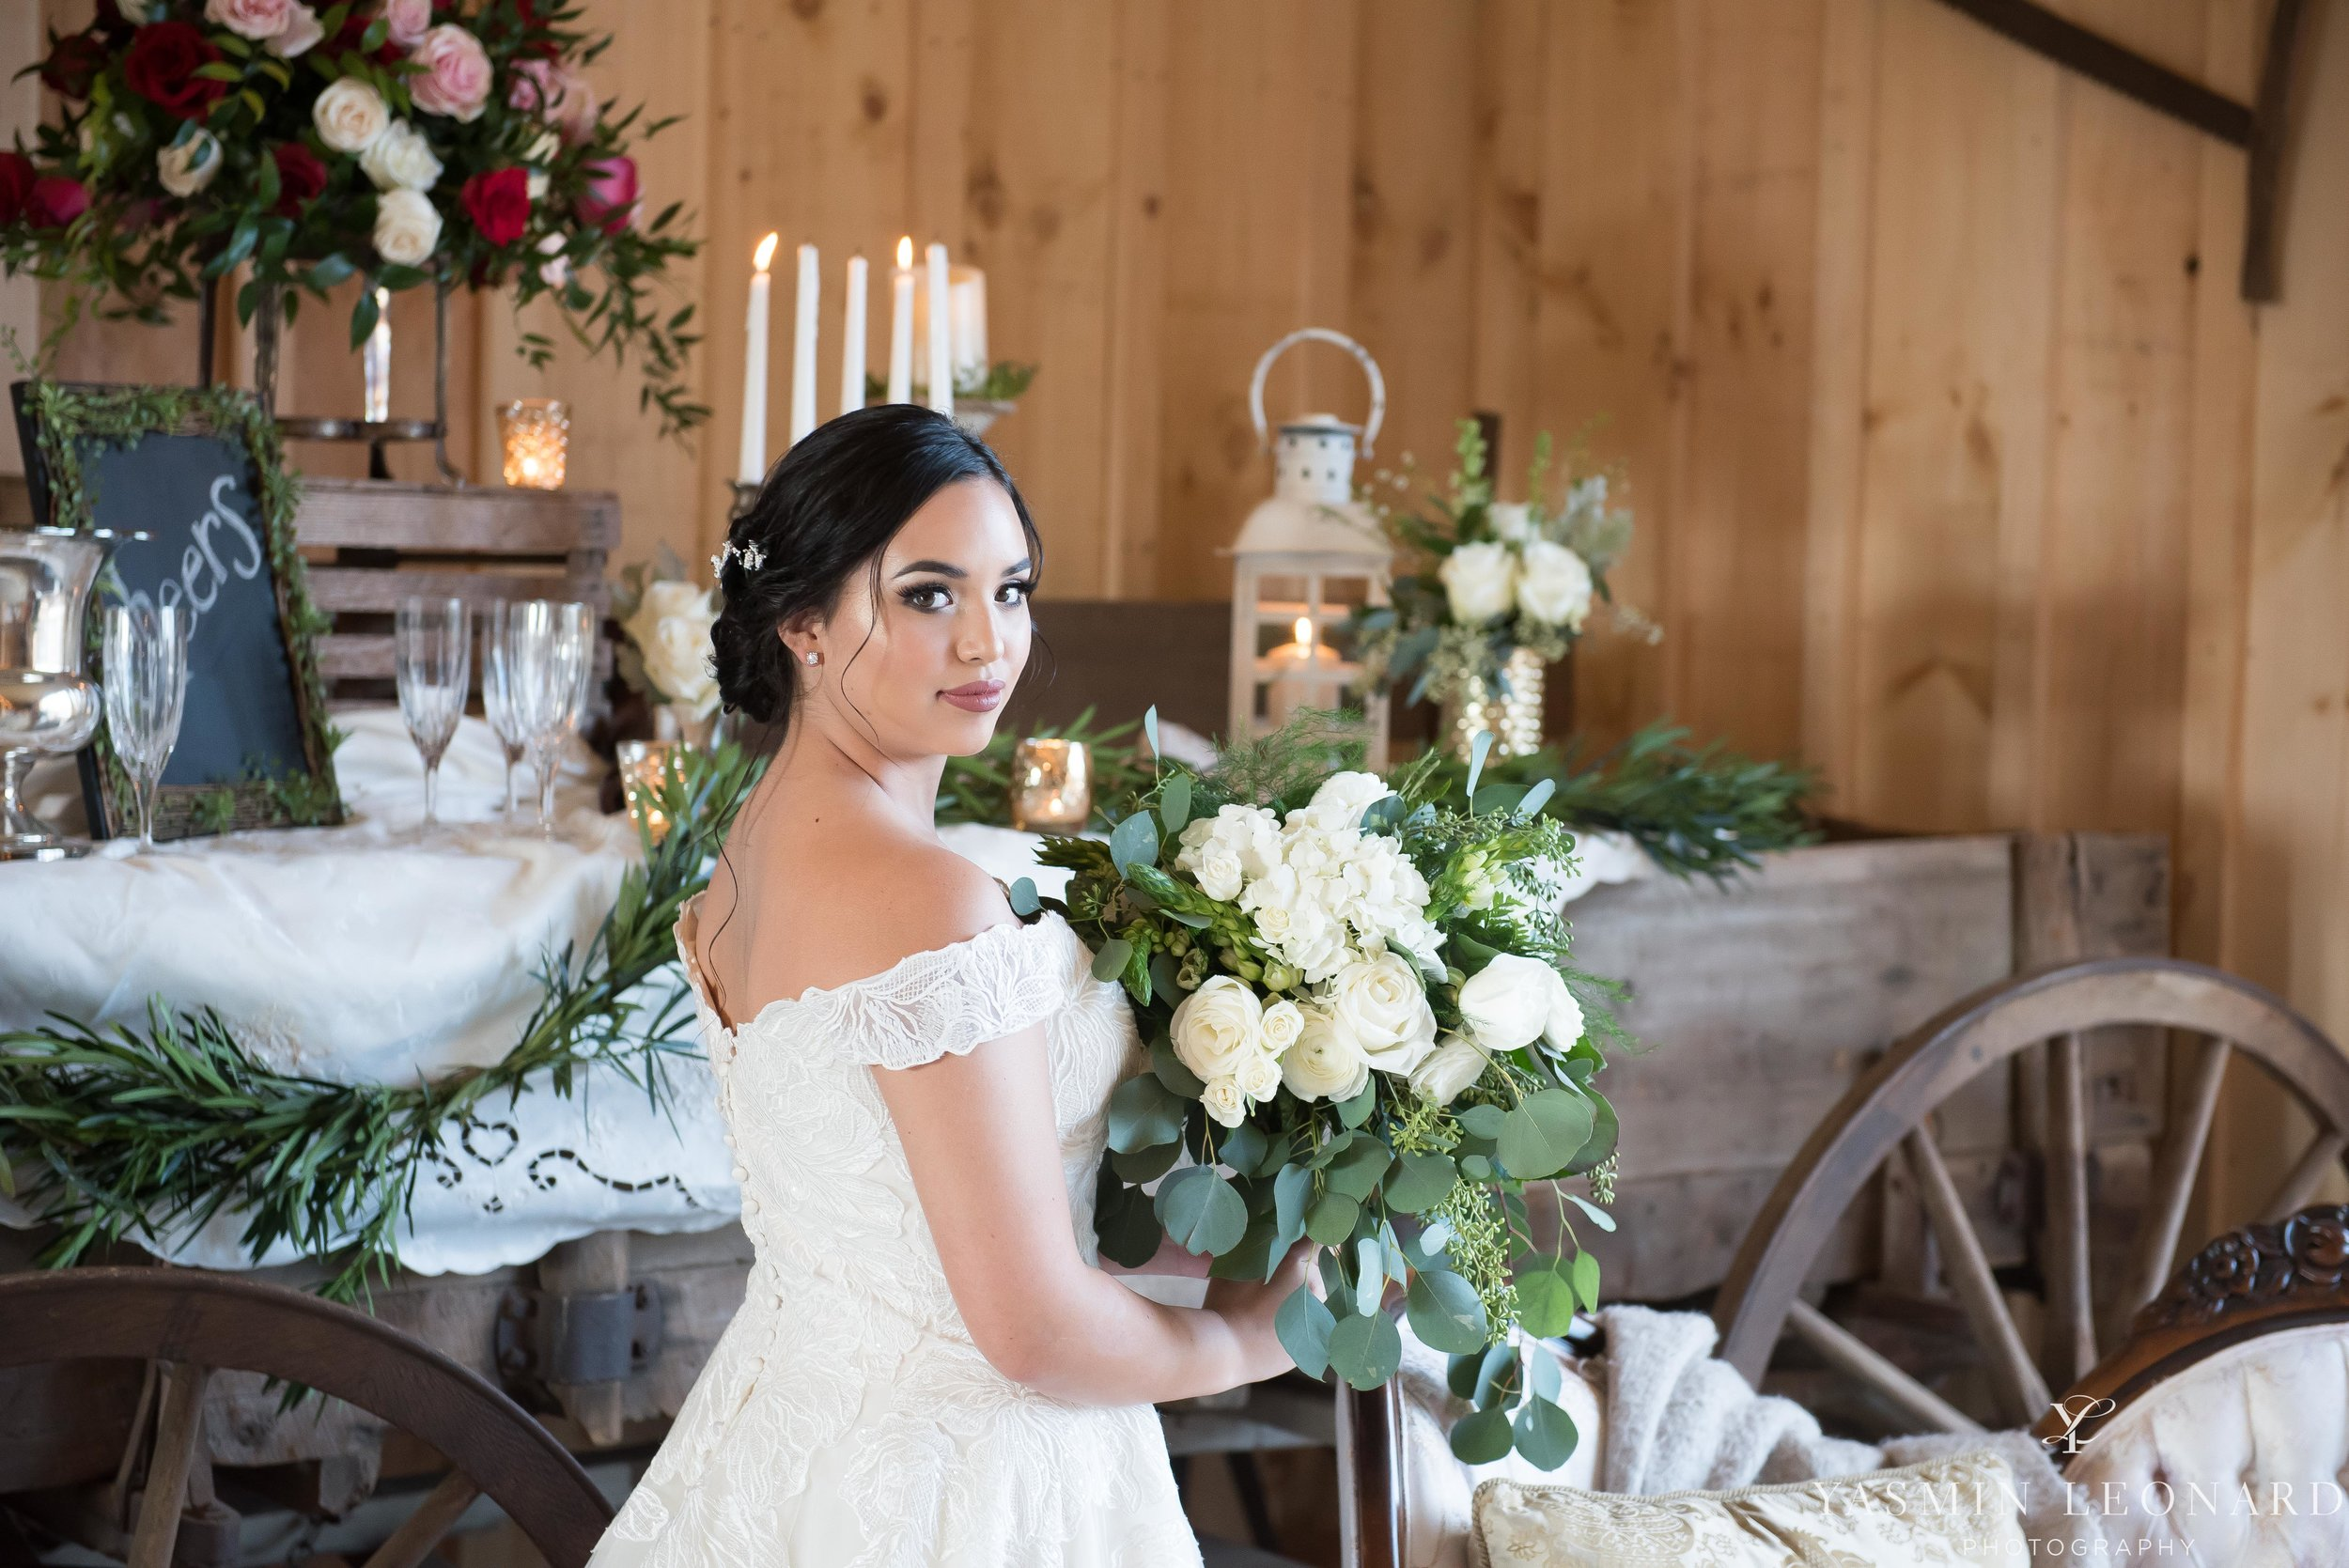 Old Homeplace Vineyard - Grits and Glitter - Dashing Dames Bridal Boutique - Just Priceless - Yasmin Leonard Photography - High Point Weddings - NC Weddings - NC Wedding Venues - High Point Jewelers - NC Wines - NC Vineyards - Cupcake Cuties-45.jpg